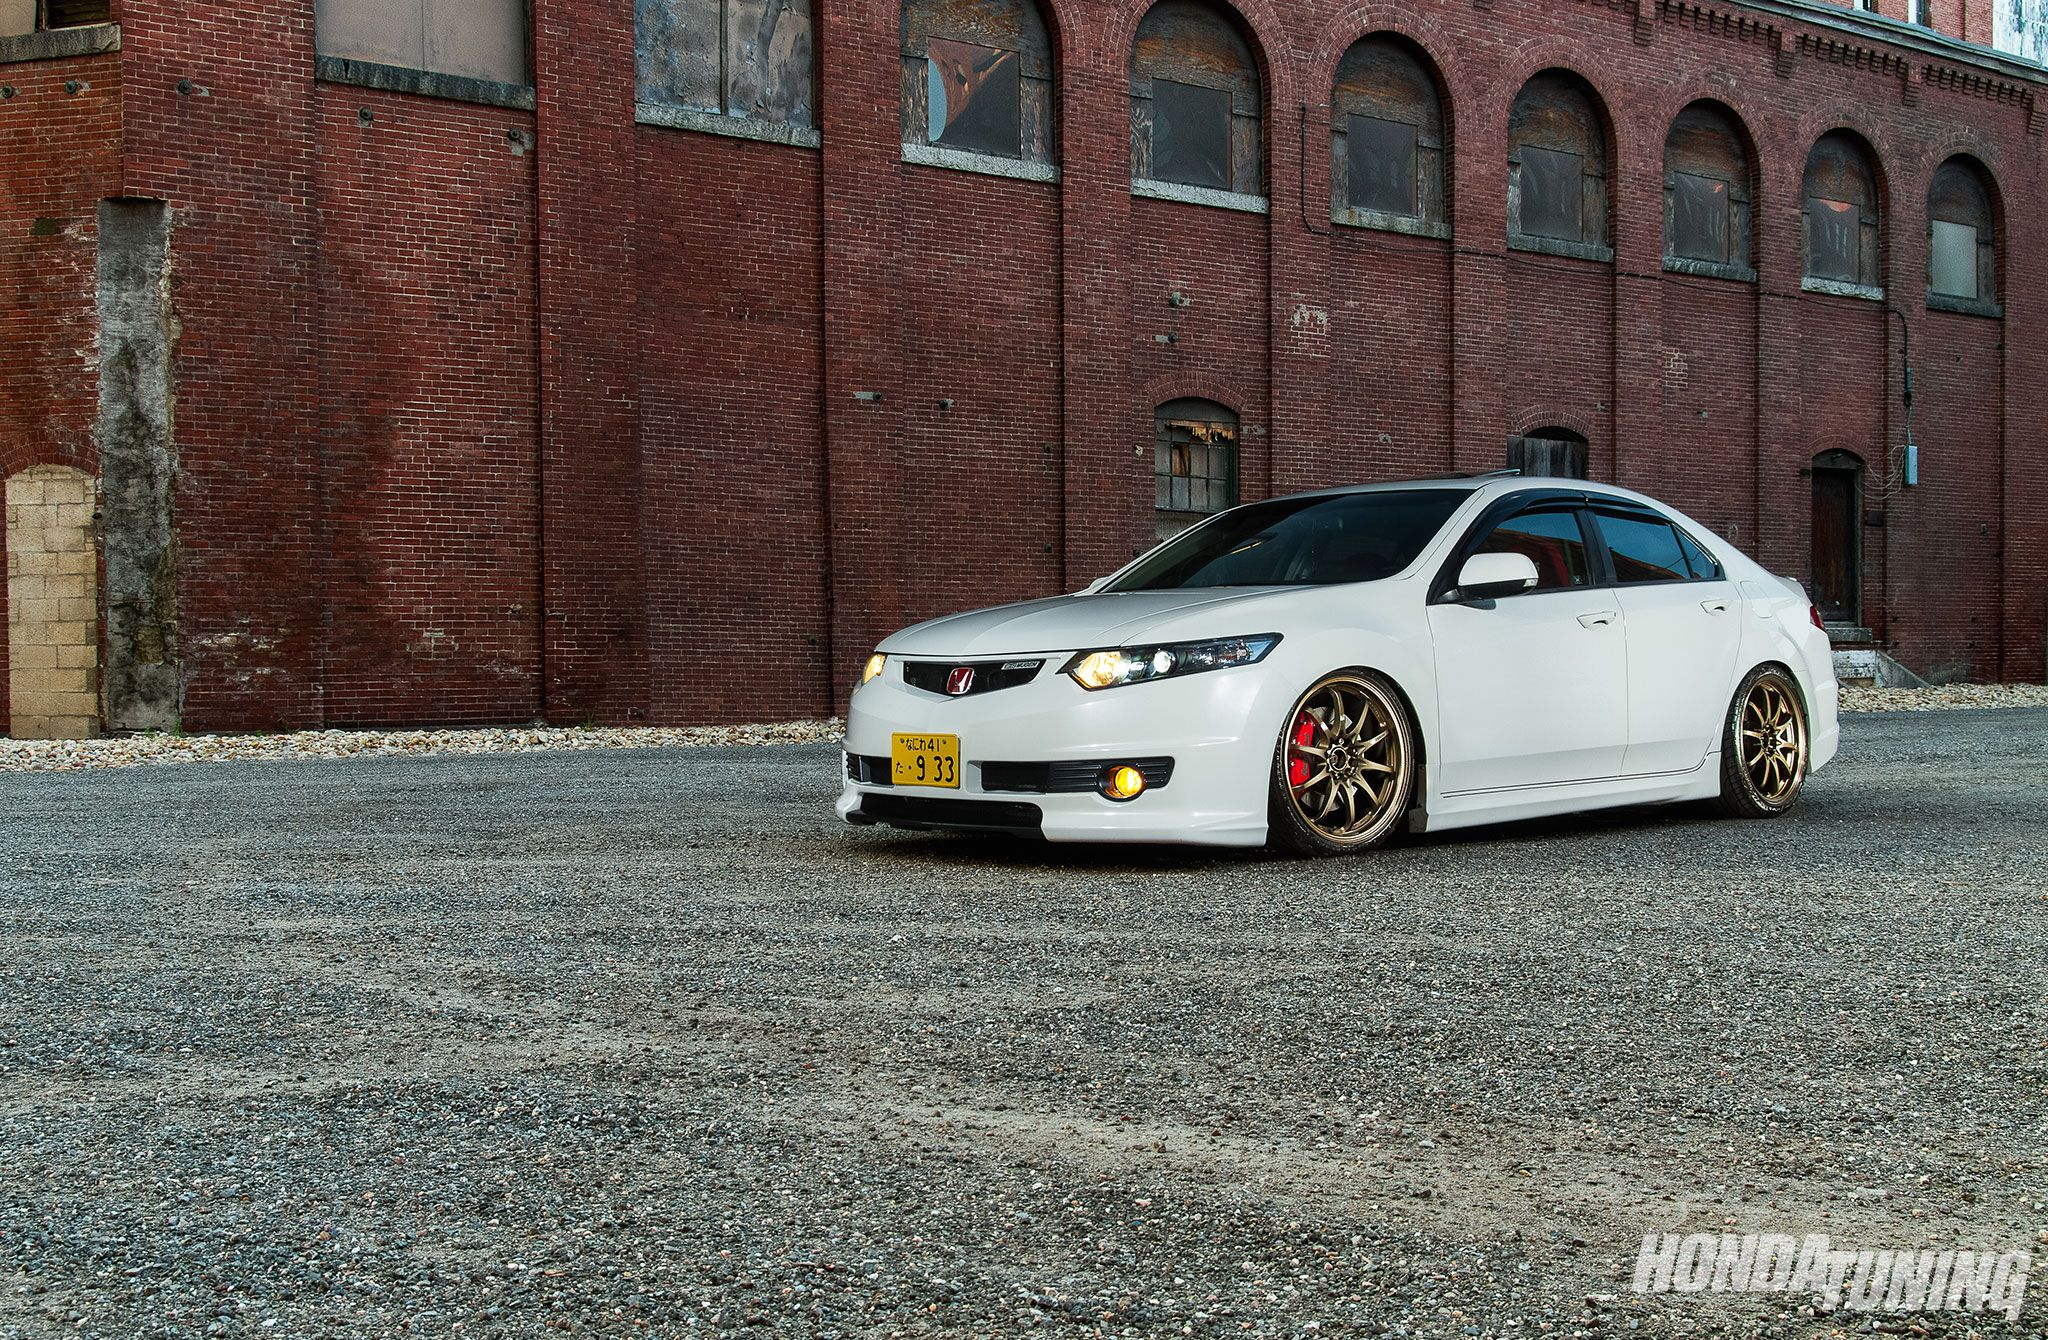 2048x1340 - Acura TSX Wallpapers 27